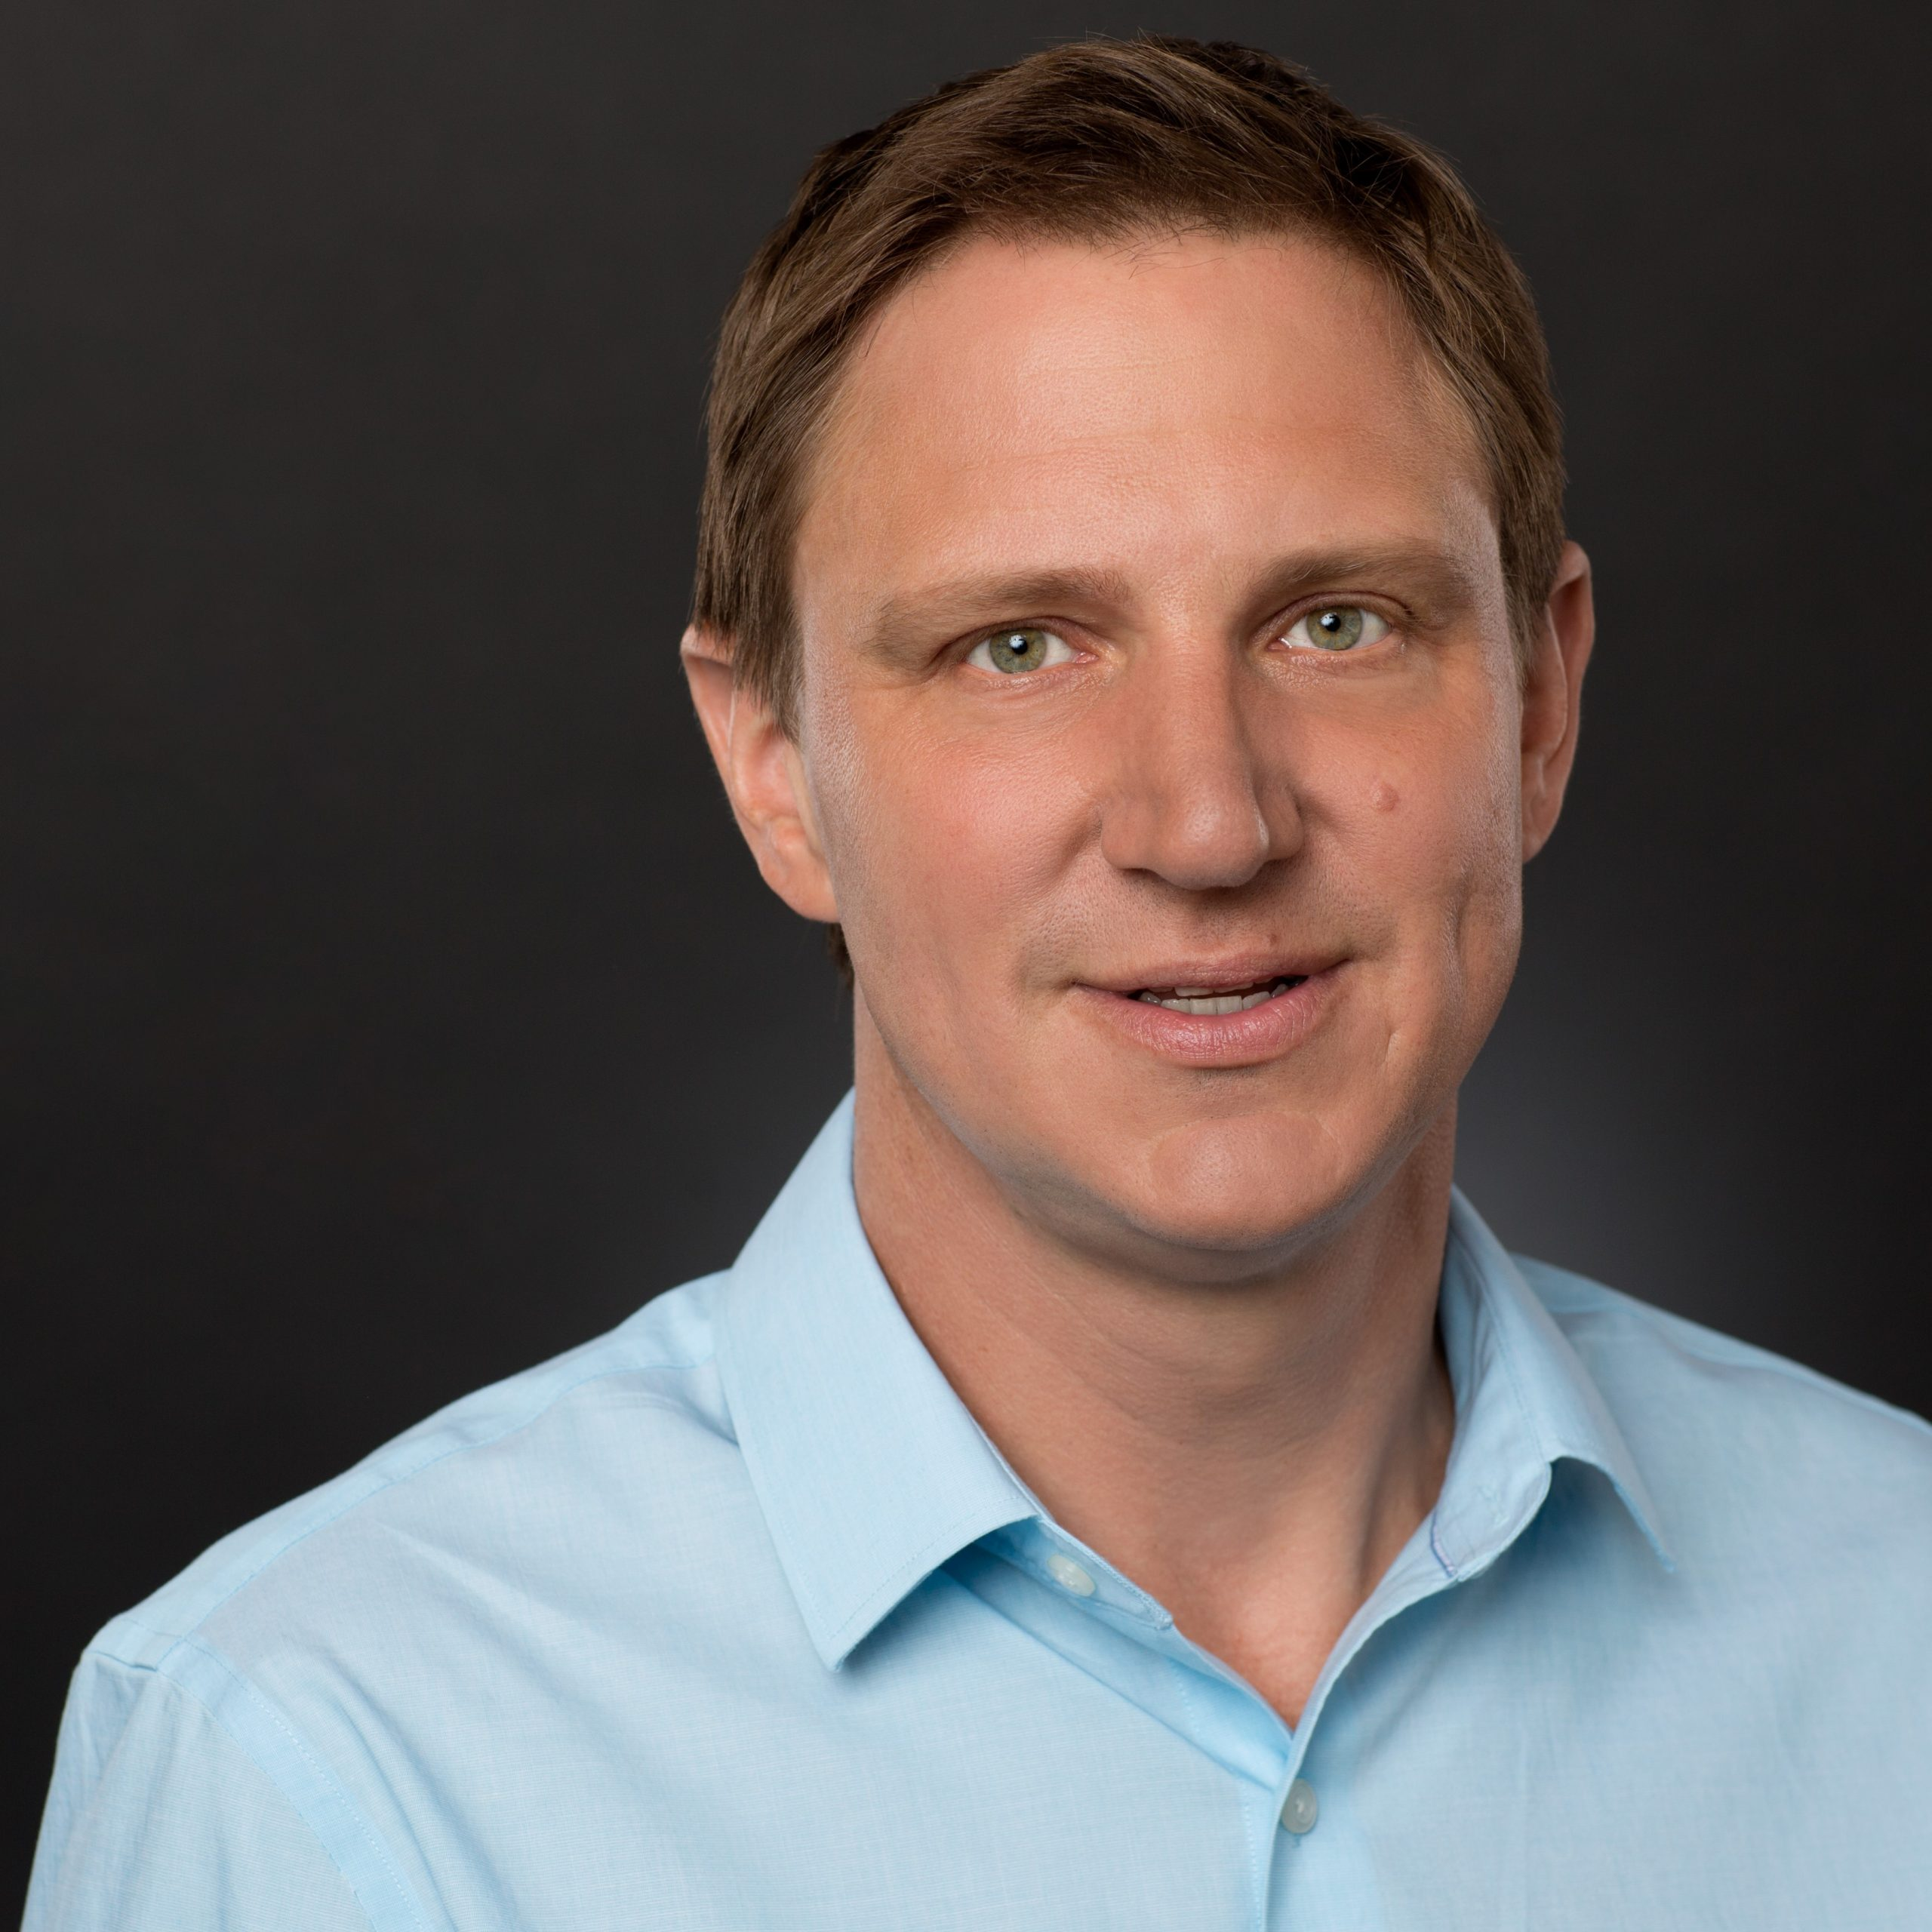 Wave 80's Dan Laser Joins Leaders from J&J, Lantos on MedInnovations panel